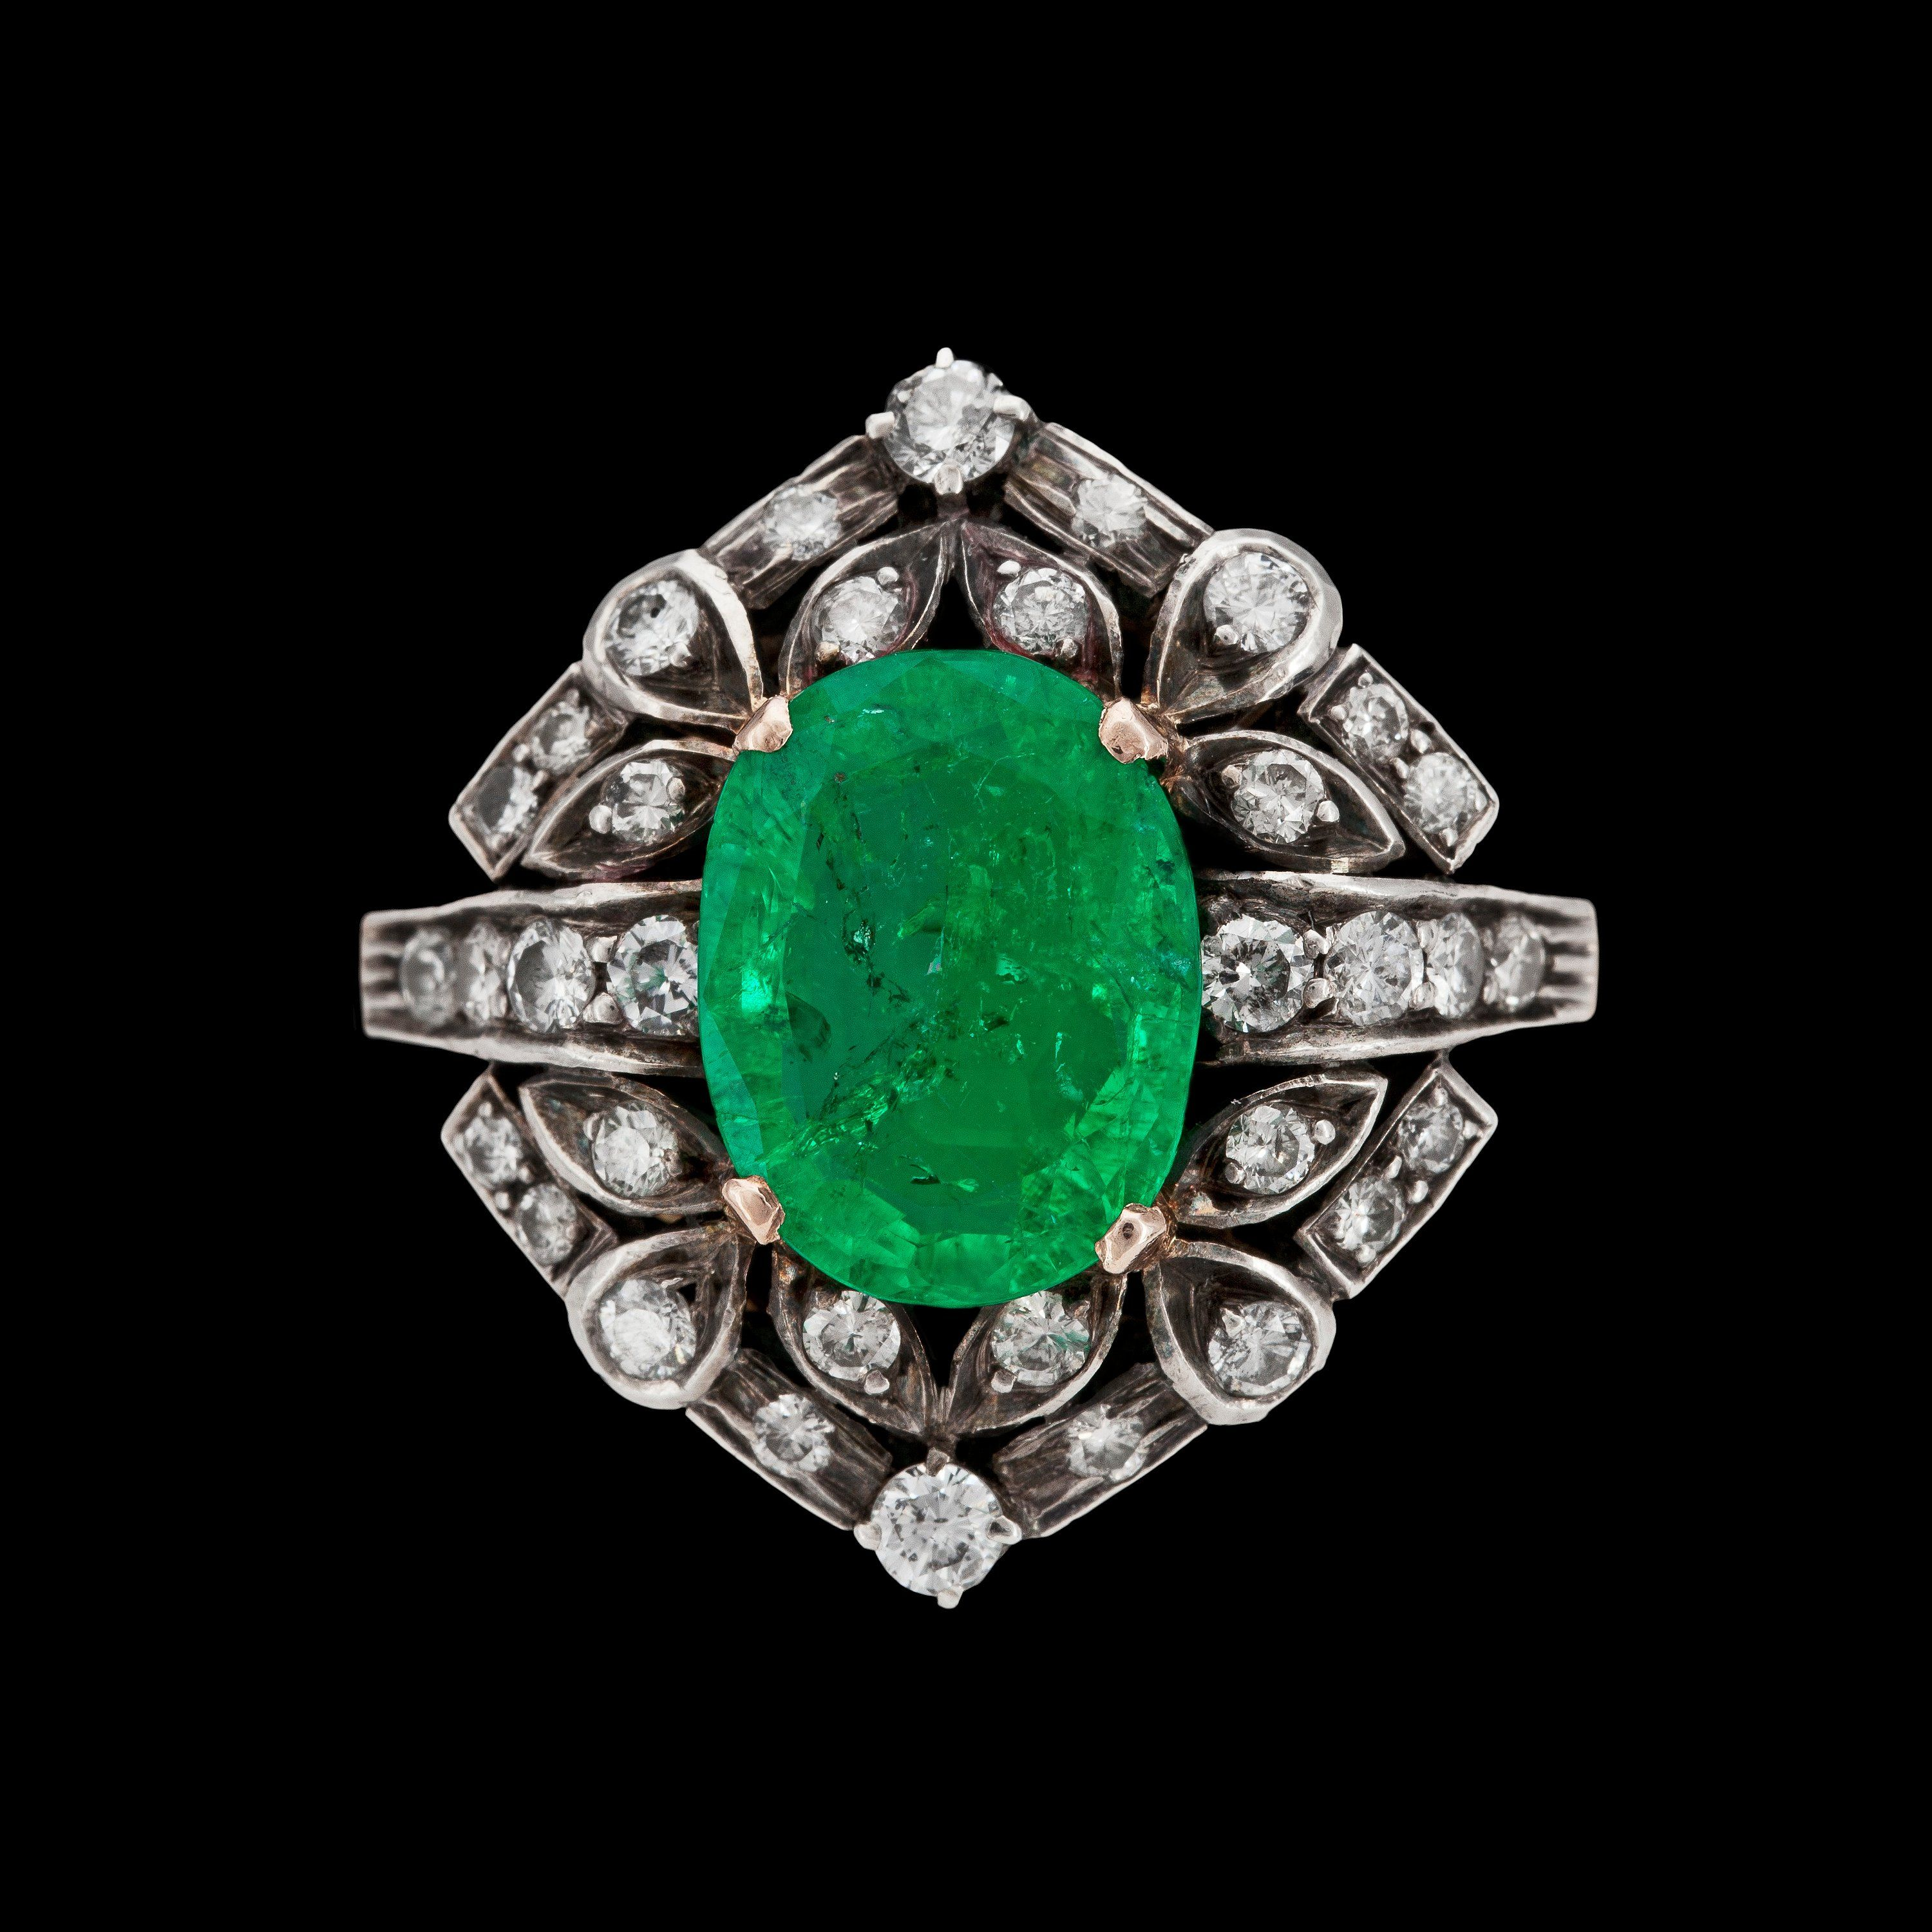 An emerald and diamond ring, tot. app. 1 cts.  18k gold and silver.